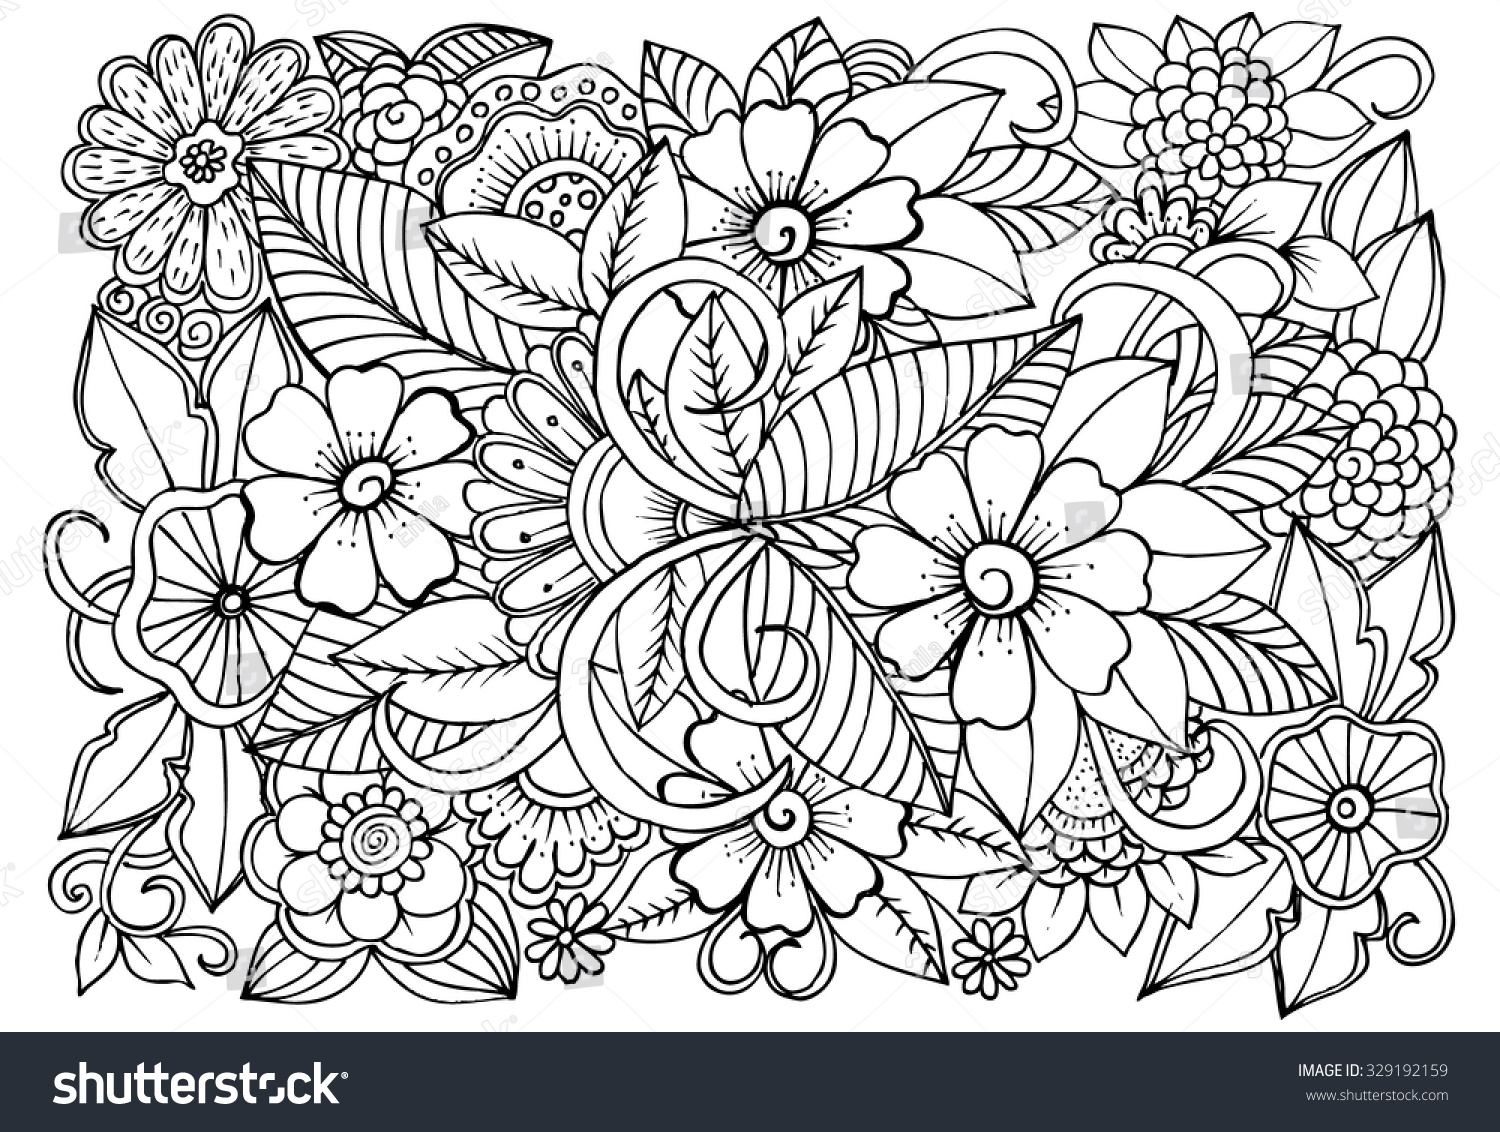 20 Adult Coloring Pages Elephant Compilation | FREE COLORING PAGES